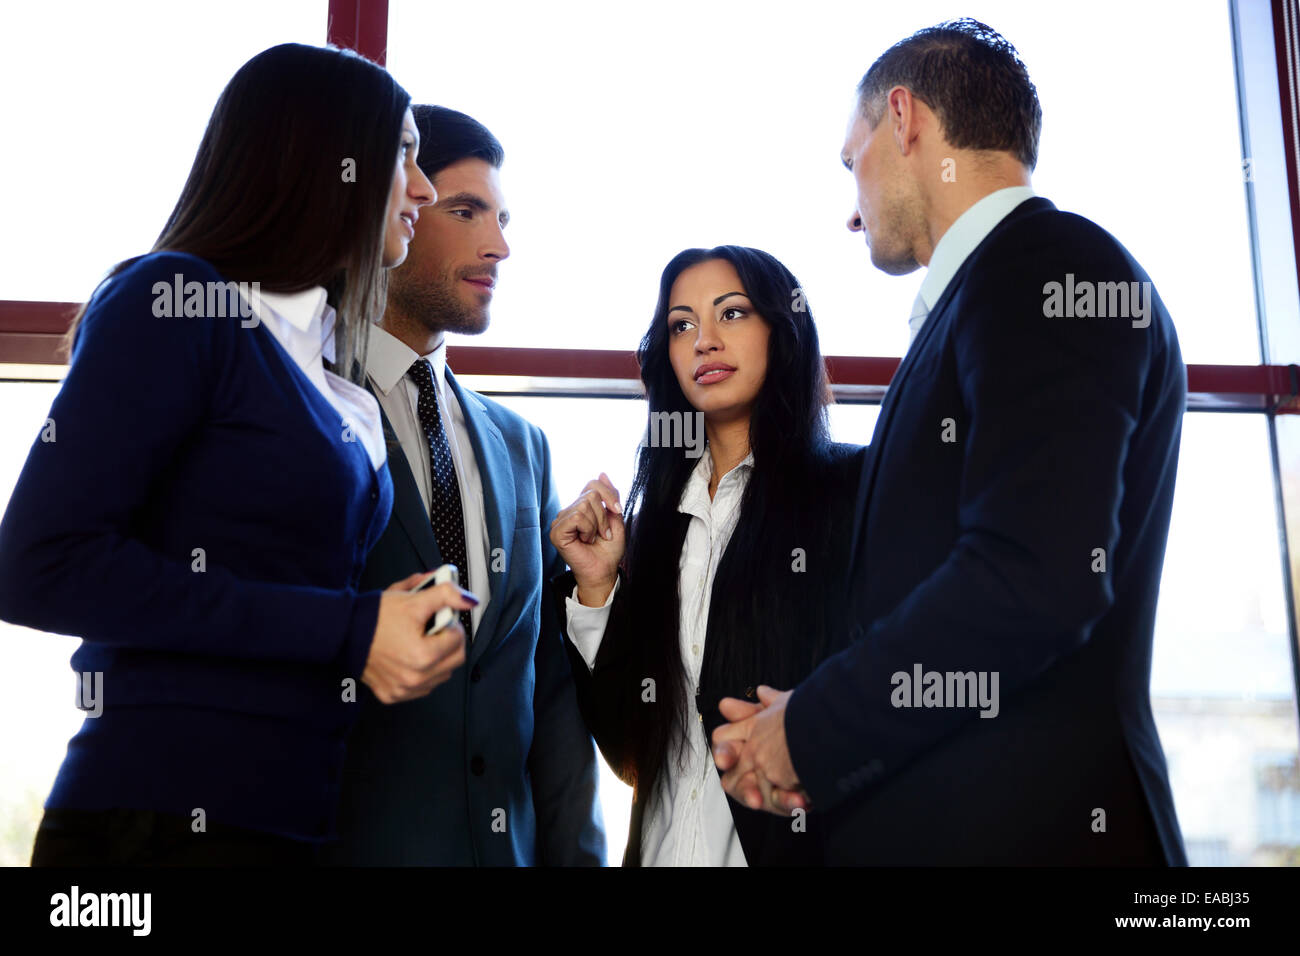 Group of business people talking in the office - Stock Image